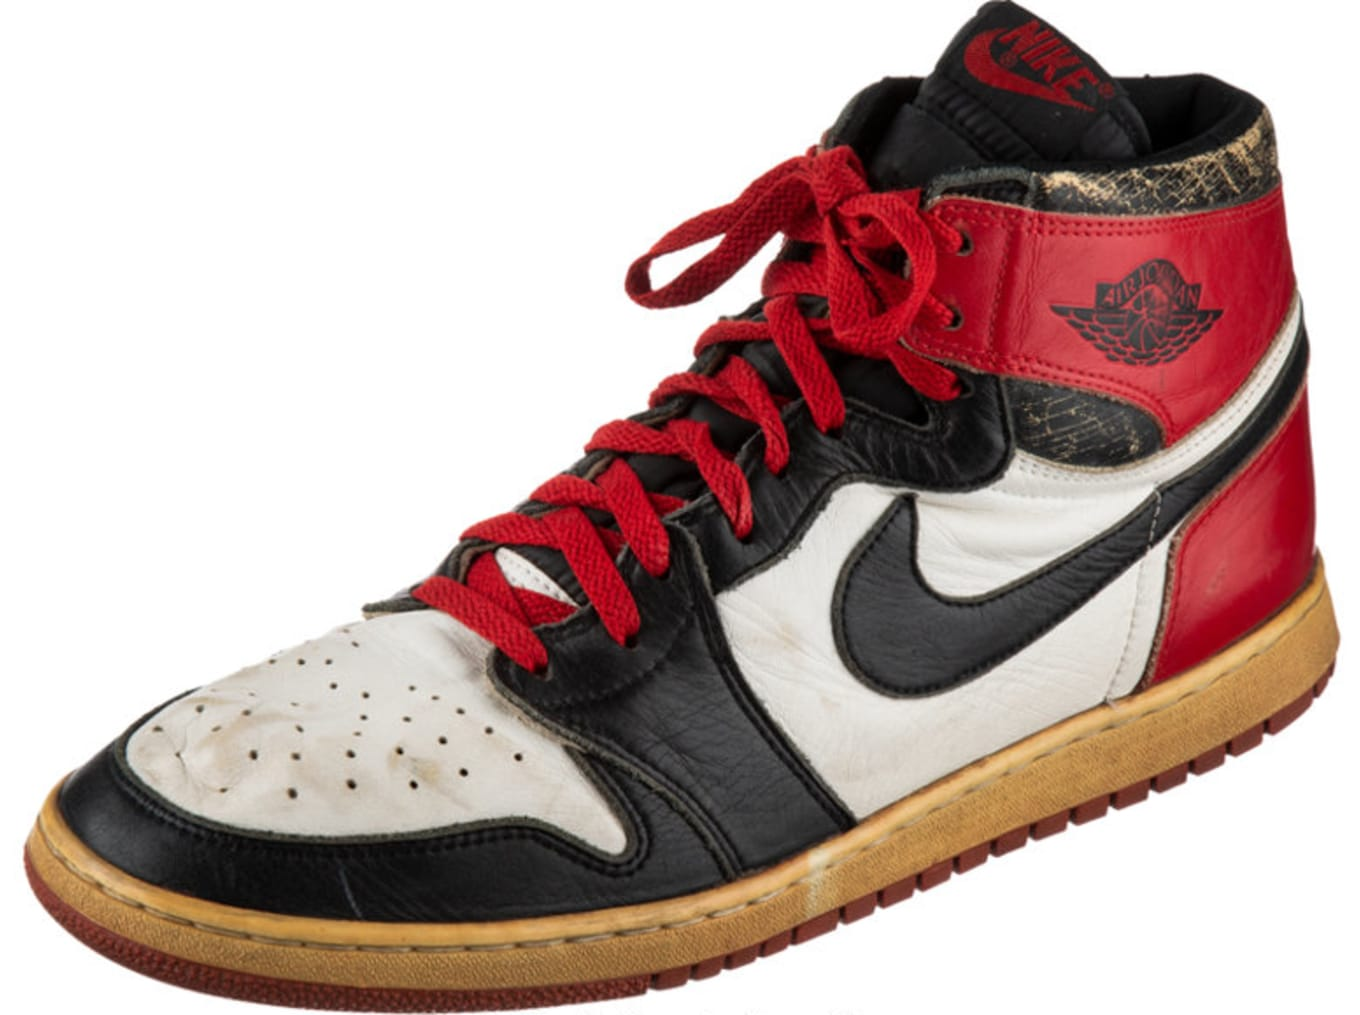 4f1f4036c20660 Your Chance to Own One of Michael Jordan s Game-Worn Air Jordan 1s.